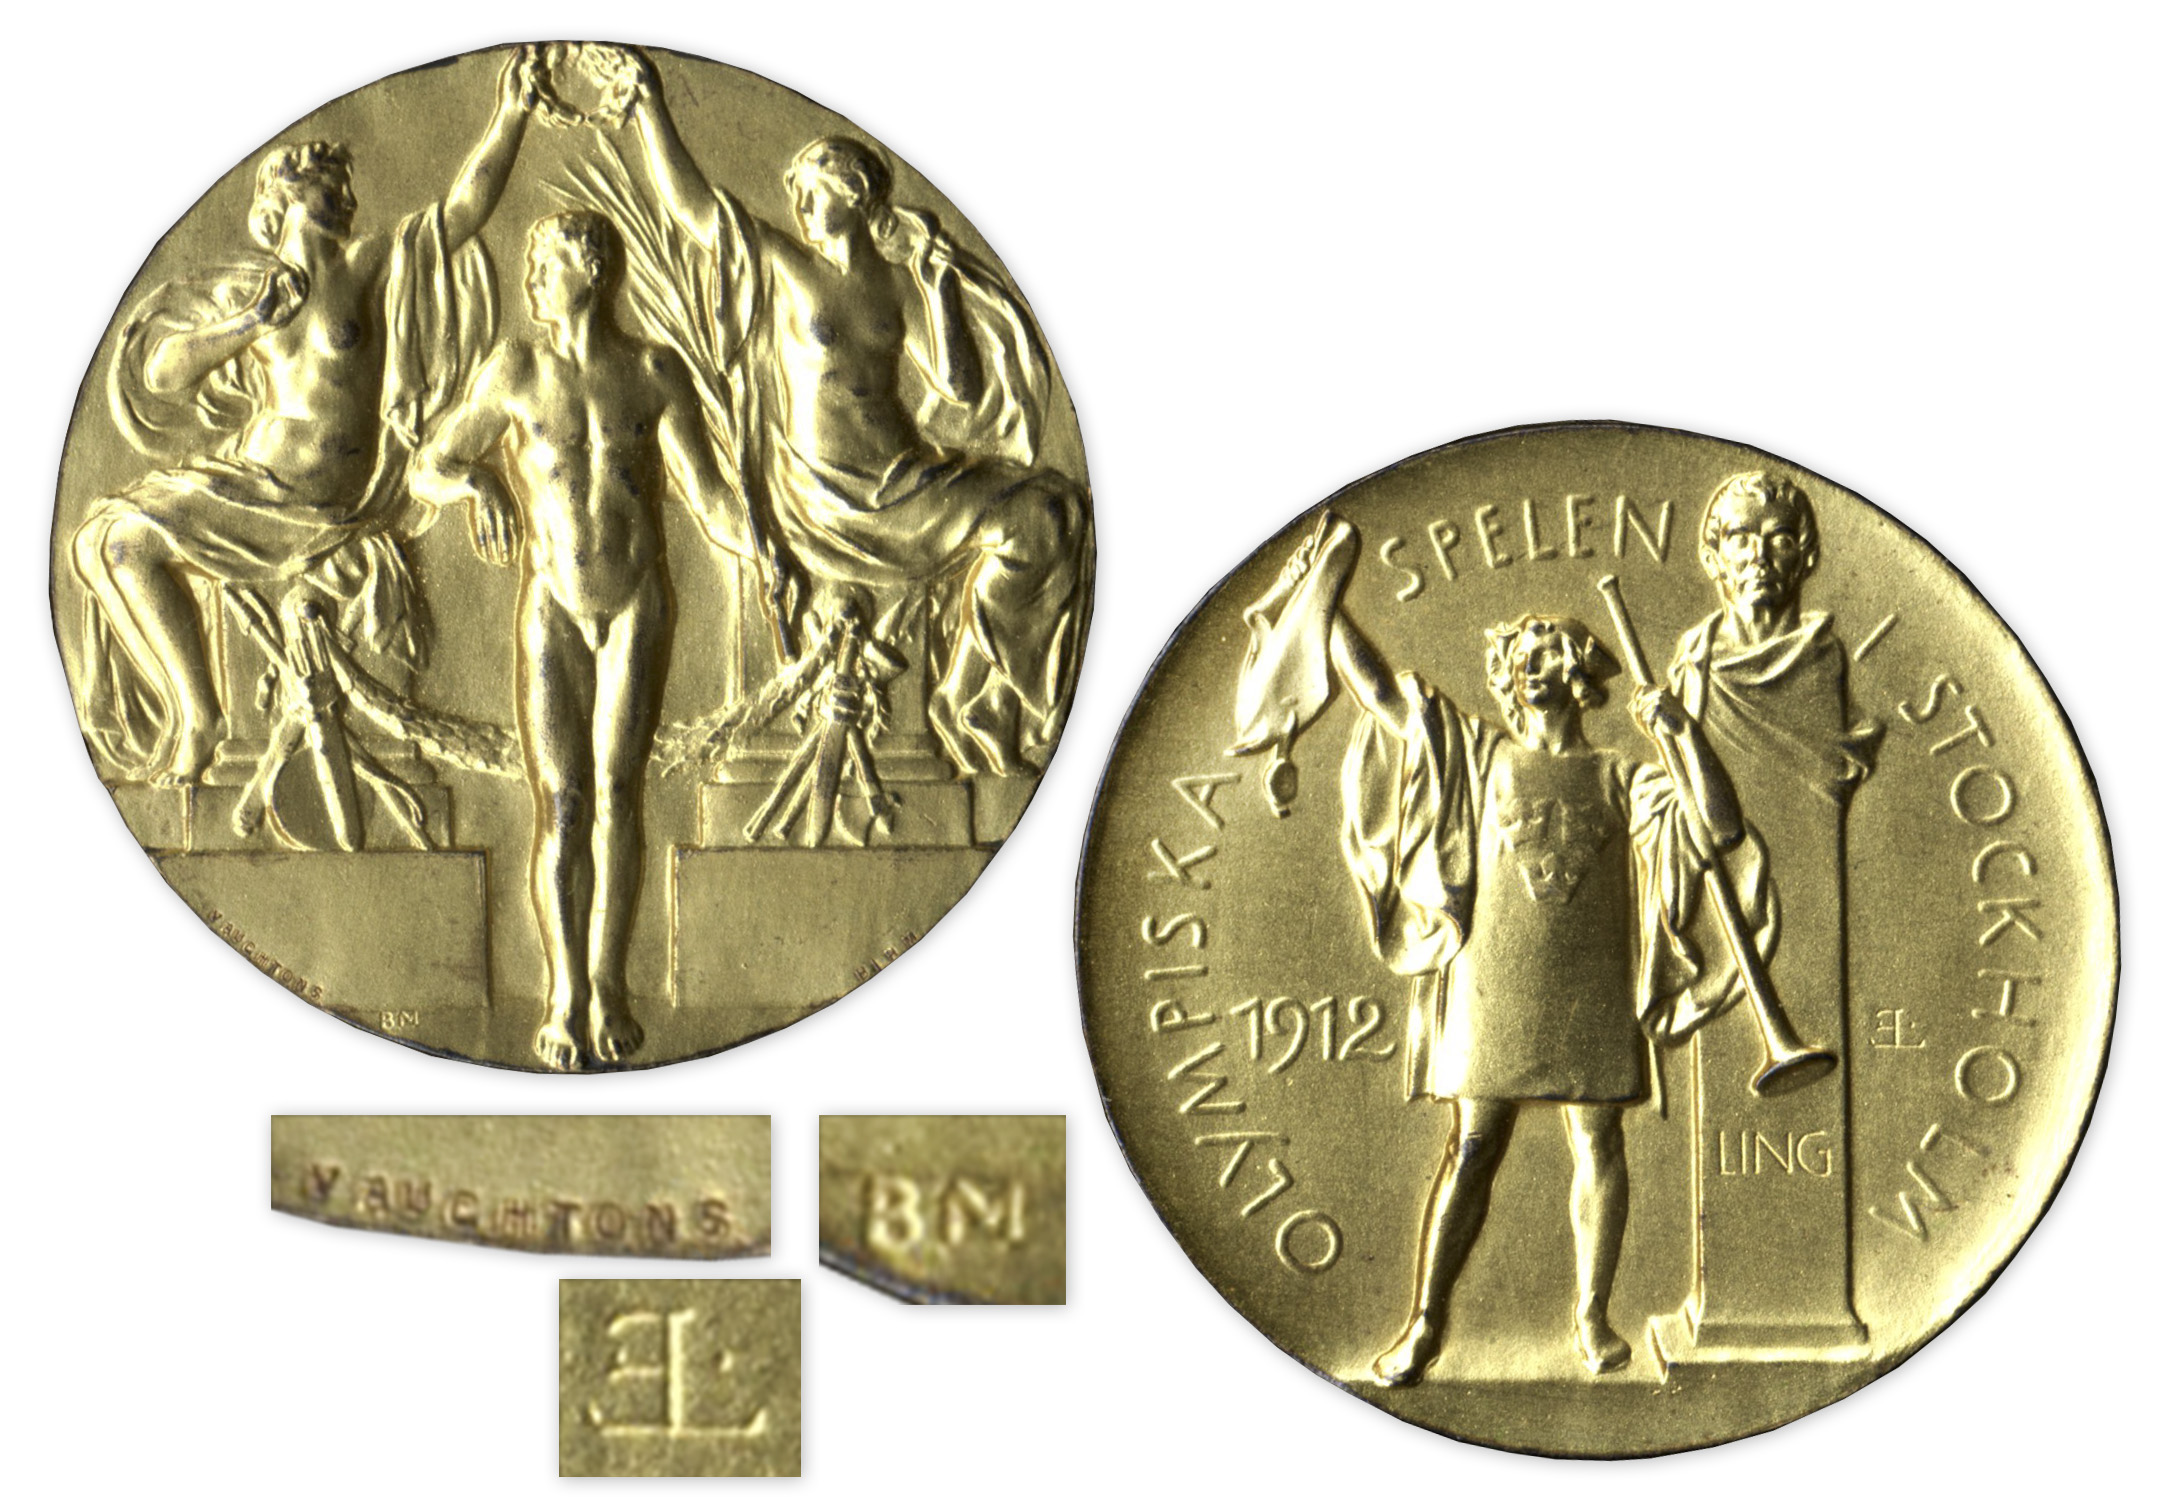 Gold Medal From the 1912 Summer Olympics, Held in Stockholm, SwedenAll > OlympicsAll > Featured